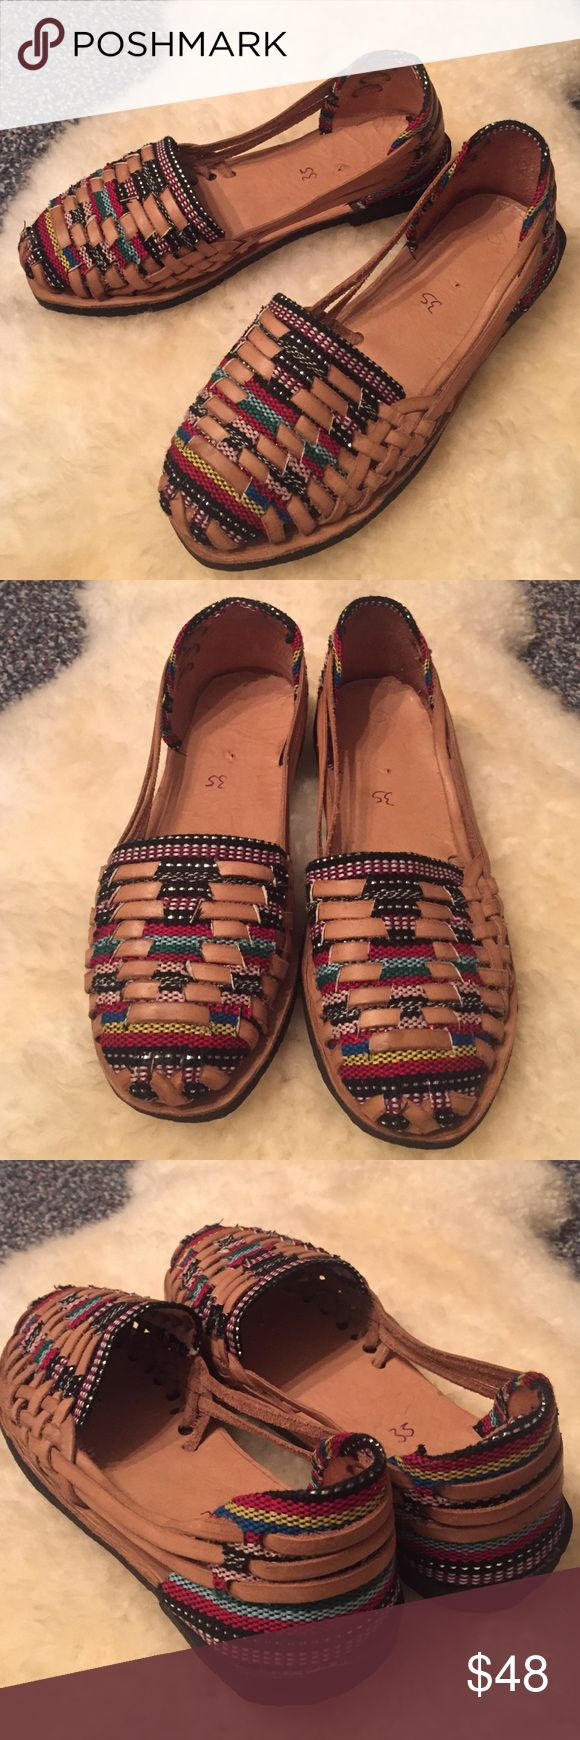 Handmade Huaraches Mexican Sandals Never been worn Mexican Huaraches sandals. Handmade from yucatan, Mexico. Leather and colorful fabric woven on top and back of the sandal. Says size 35- Fits a size 6 runs small but they do stretch out and form to your feet once you wear them in and become the most comfortable ever! **not free people Free People Shoes Sandals